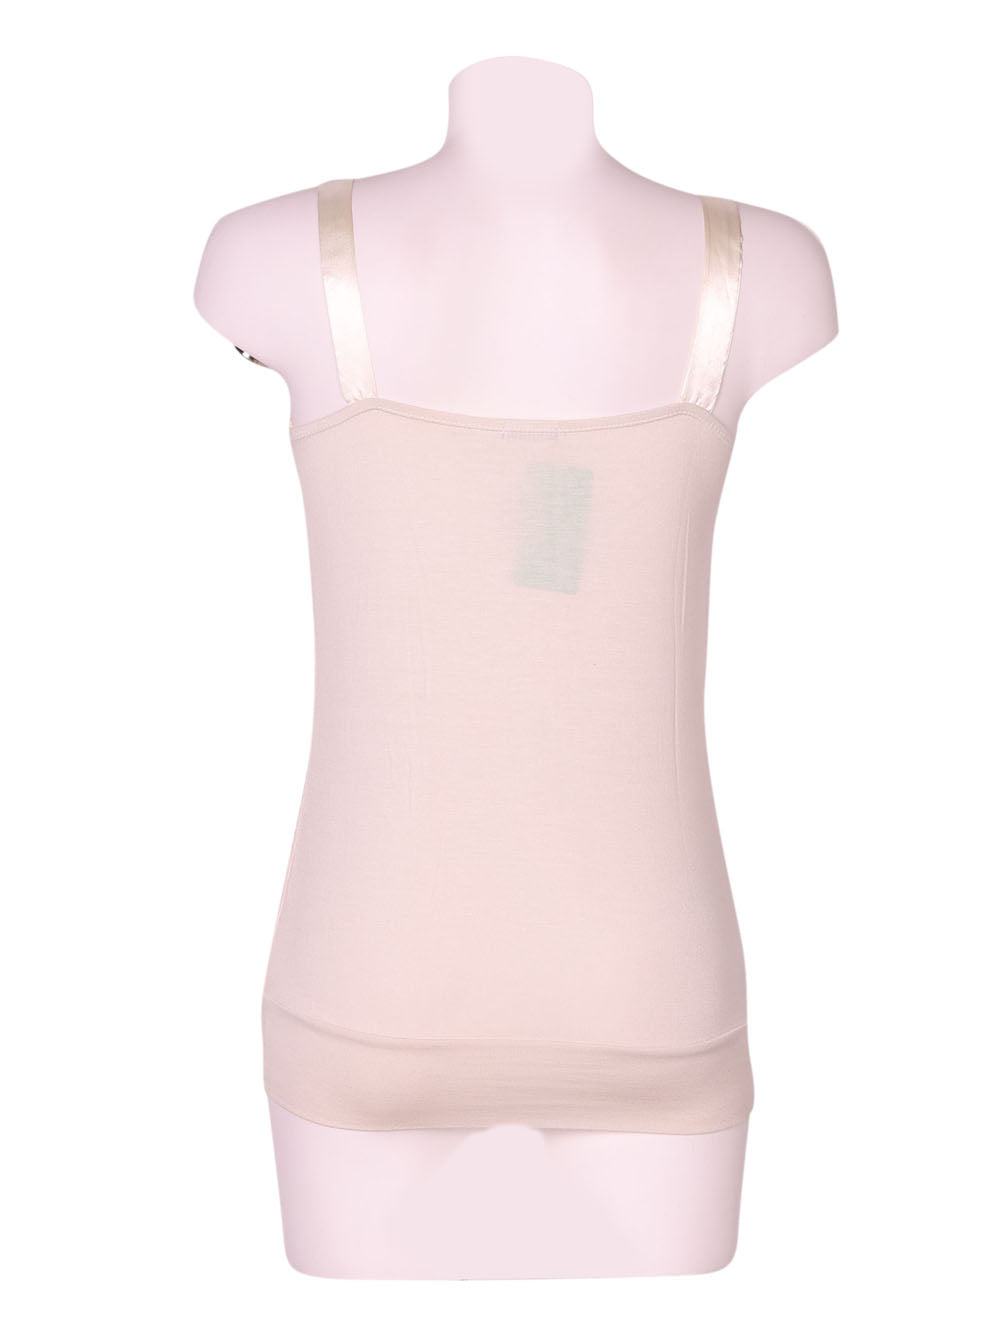 Back photo of Preloved Motivi White Woman's sleeveless top - size 8/S